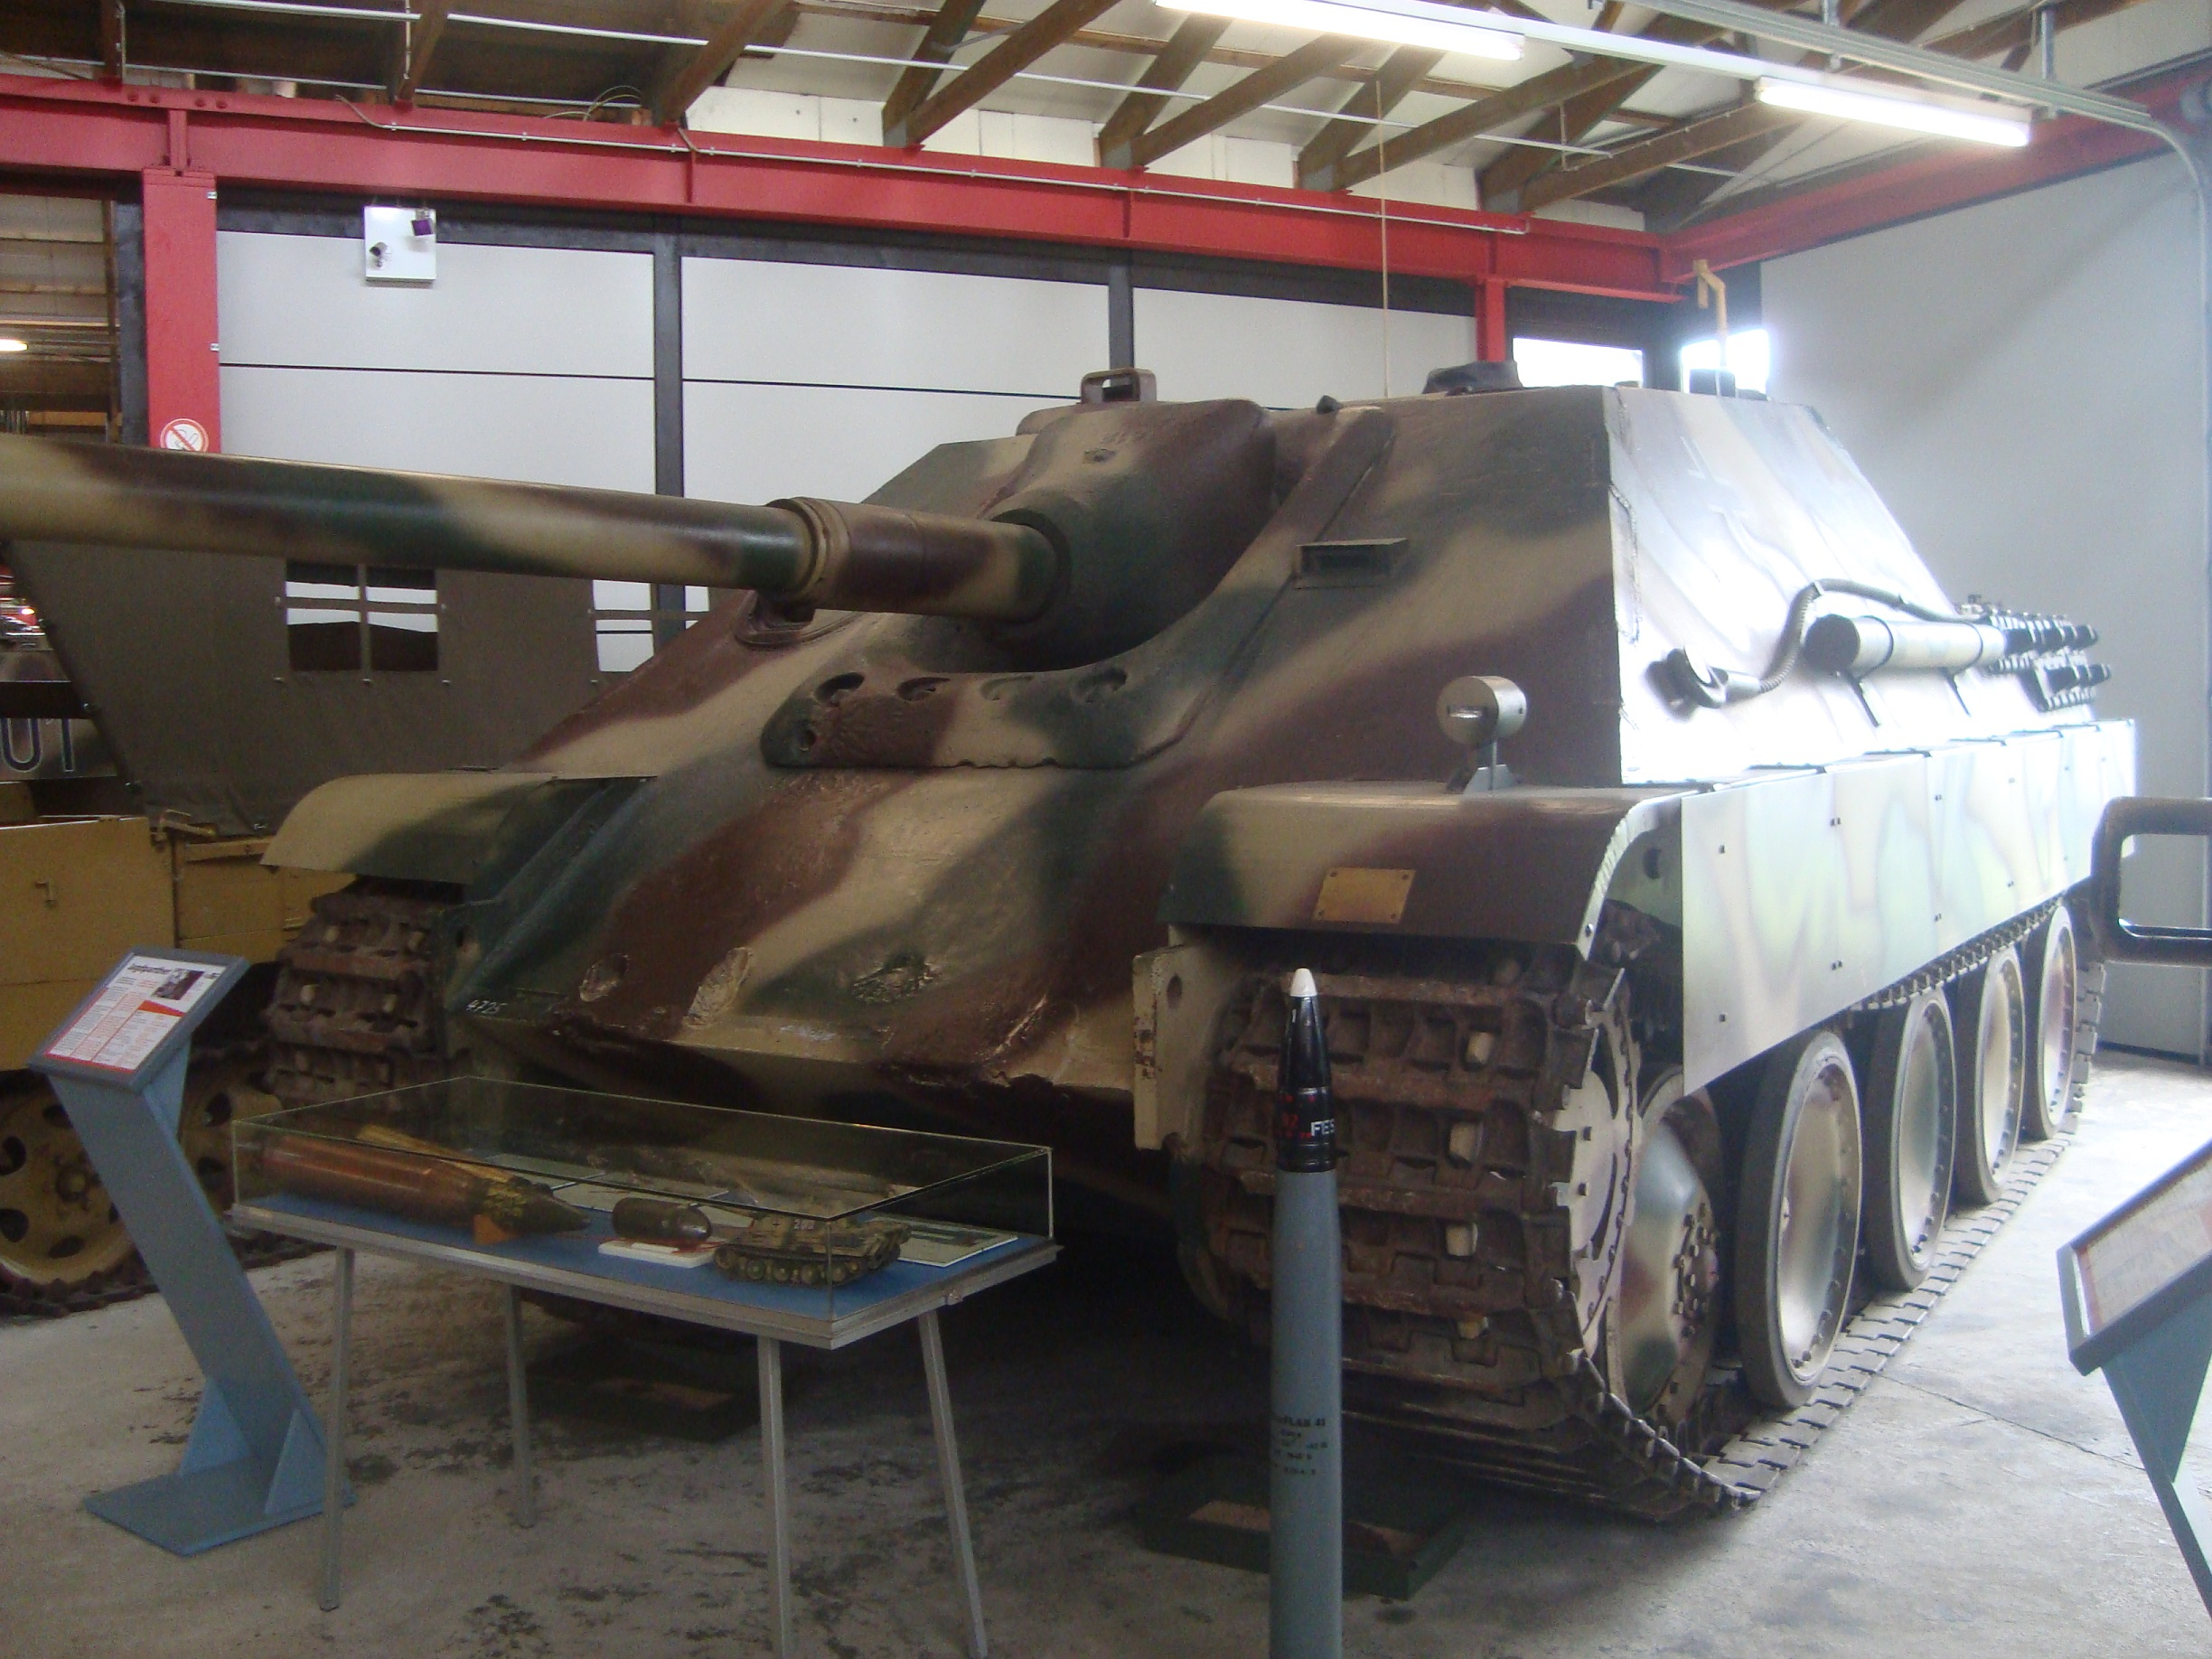 Preserved Jagdpanther at Panzermuseum Munster